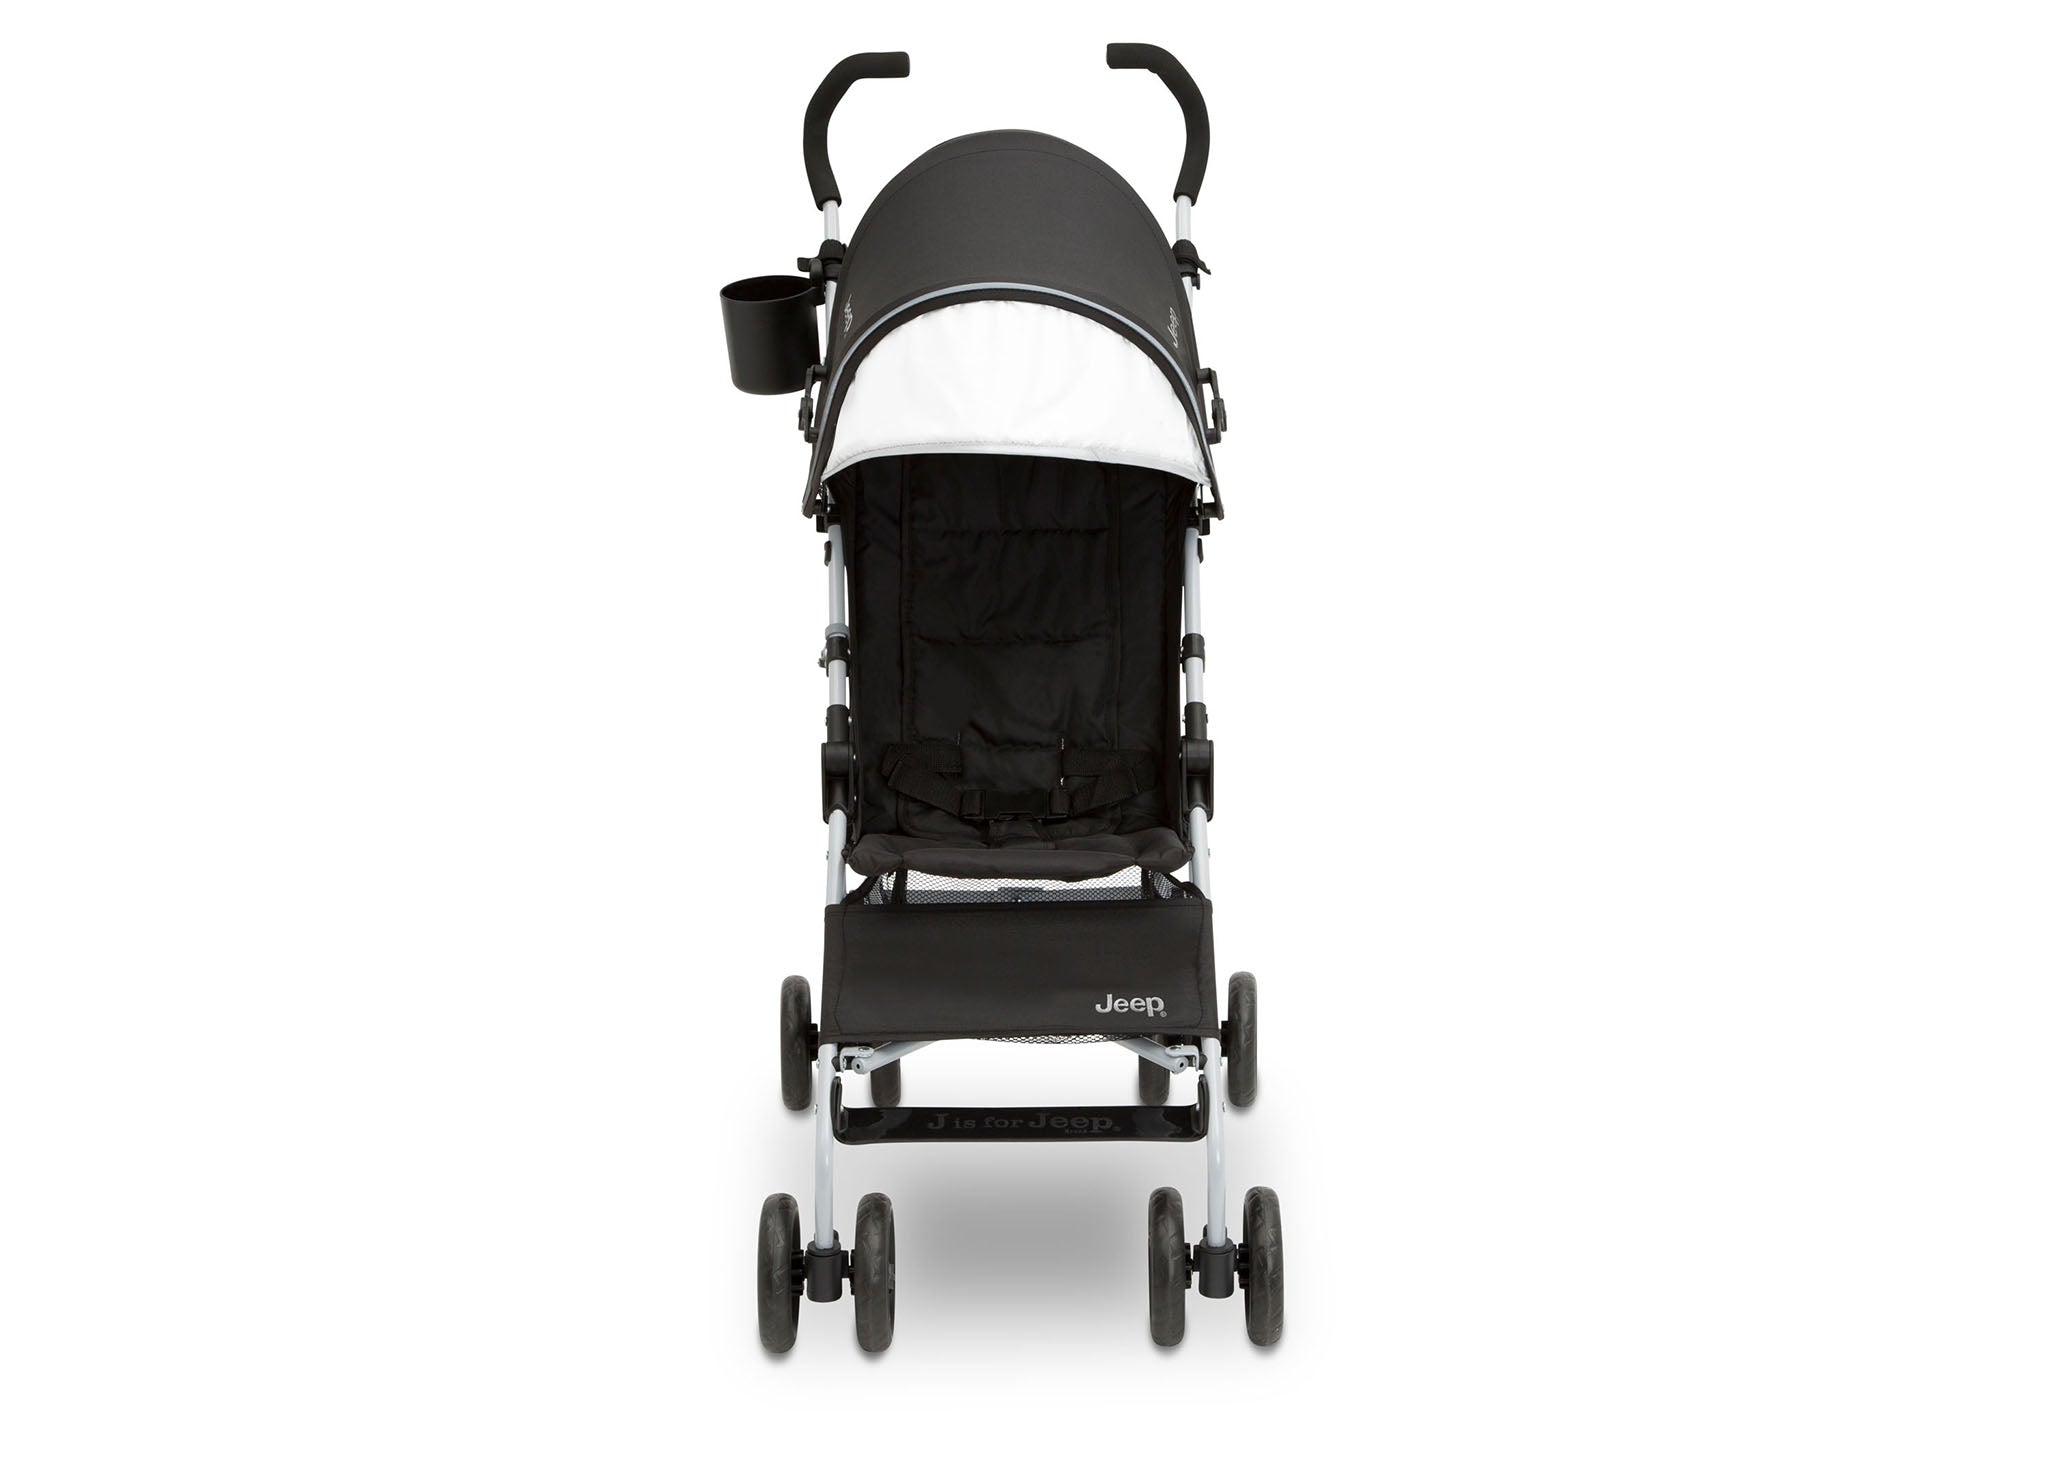 Jeep North Star Stroller by Delta Children, Black with Neutral Grey (2277), with extendable European-style canopy with sun visor